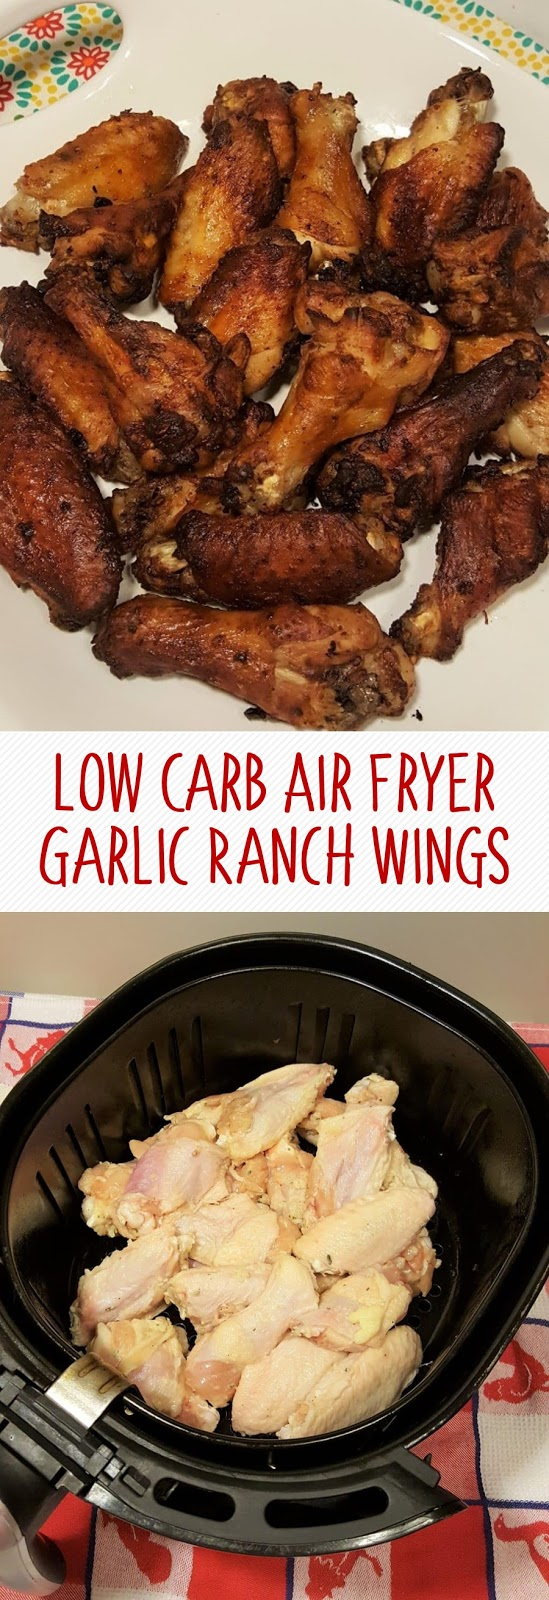 Low Carb Air Fryer Garlic Ranch Wings